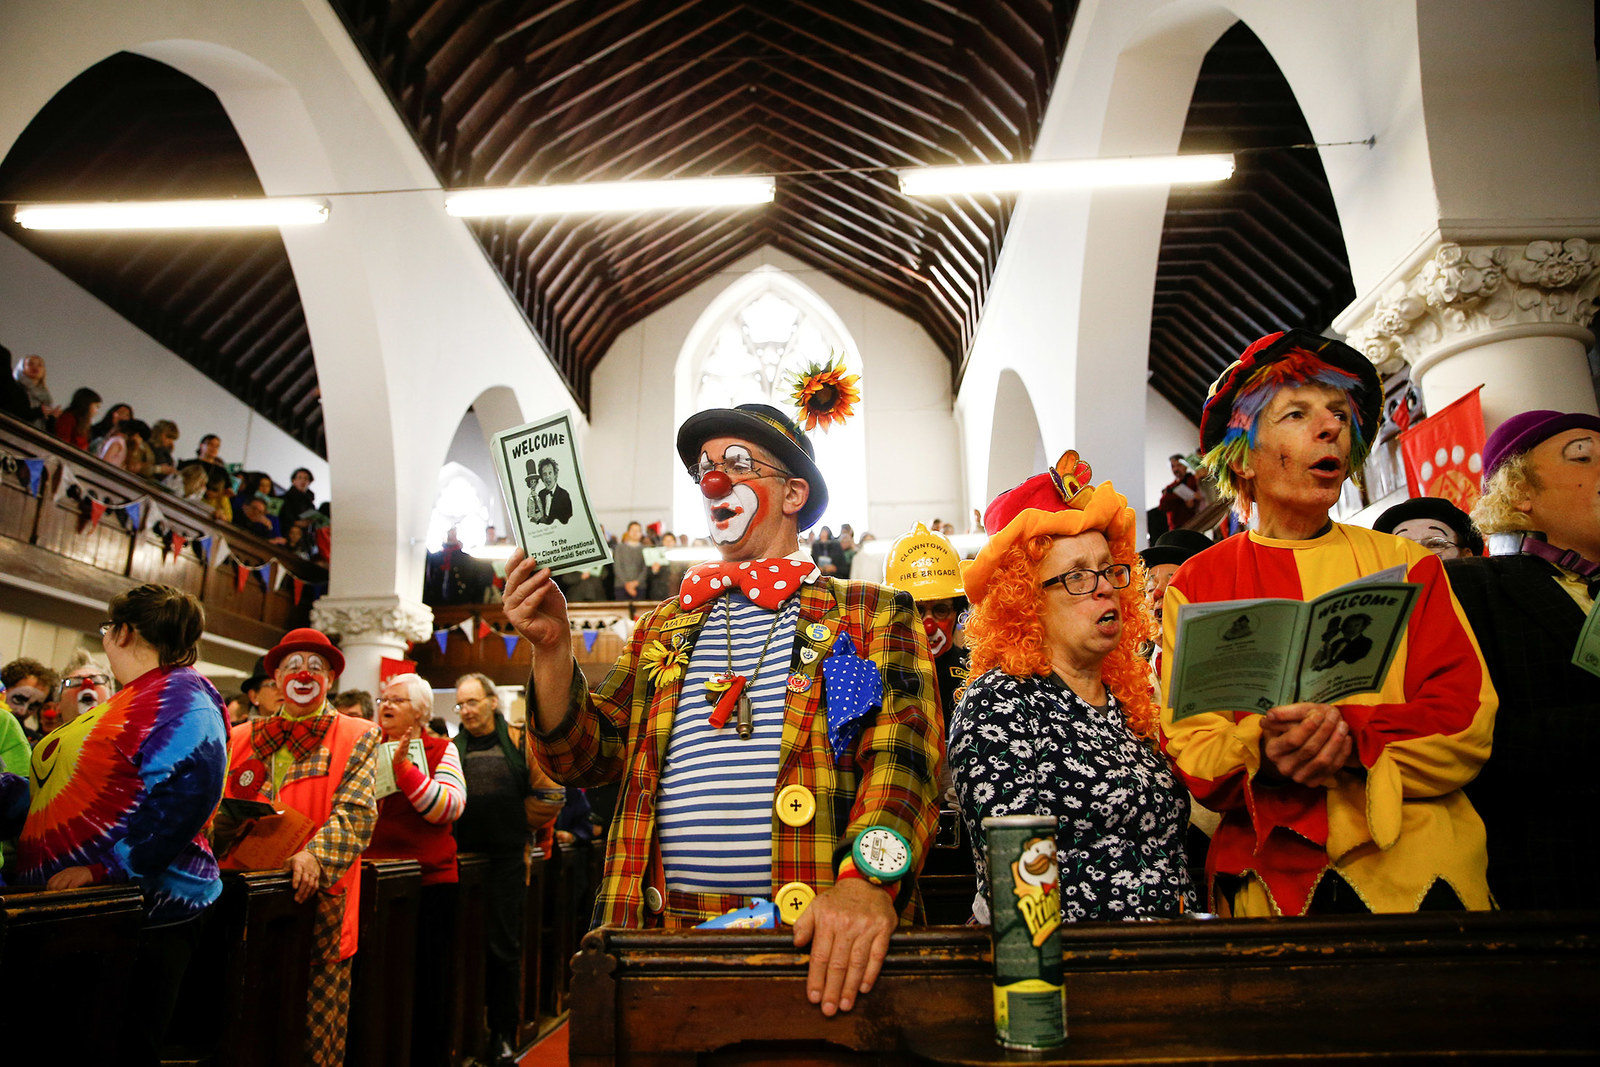 Clowns and entertainers gather to attend an annual service of remembrance in honor of British clown Joseph Grimaldi, at the All Saints Church in London on Feb. 3.